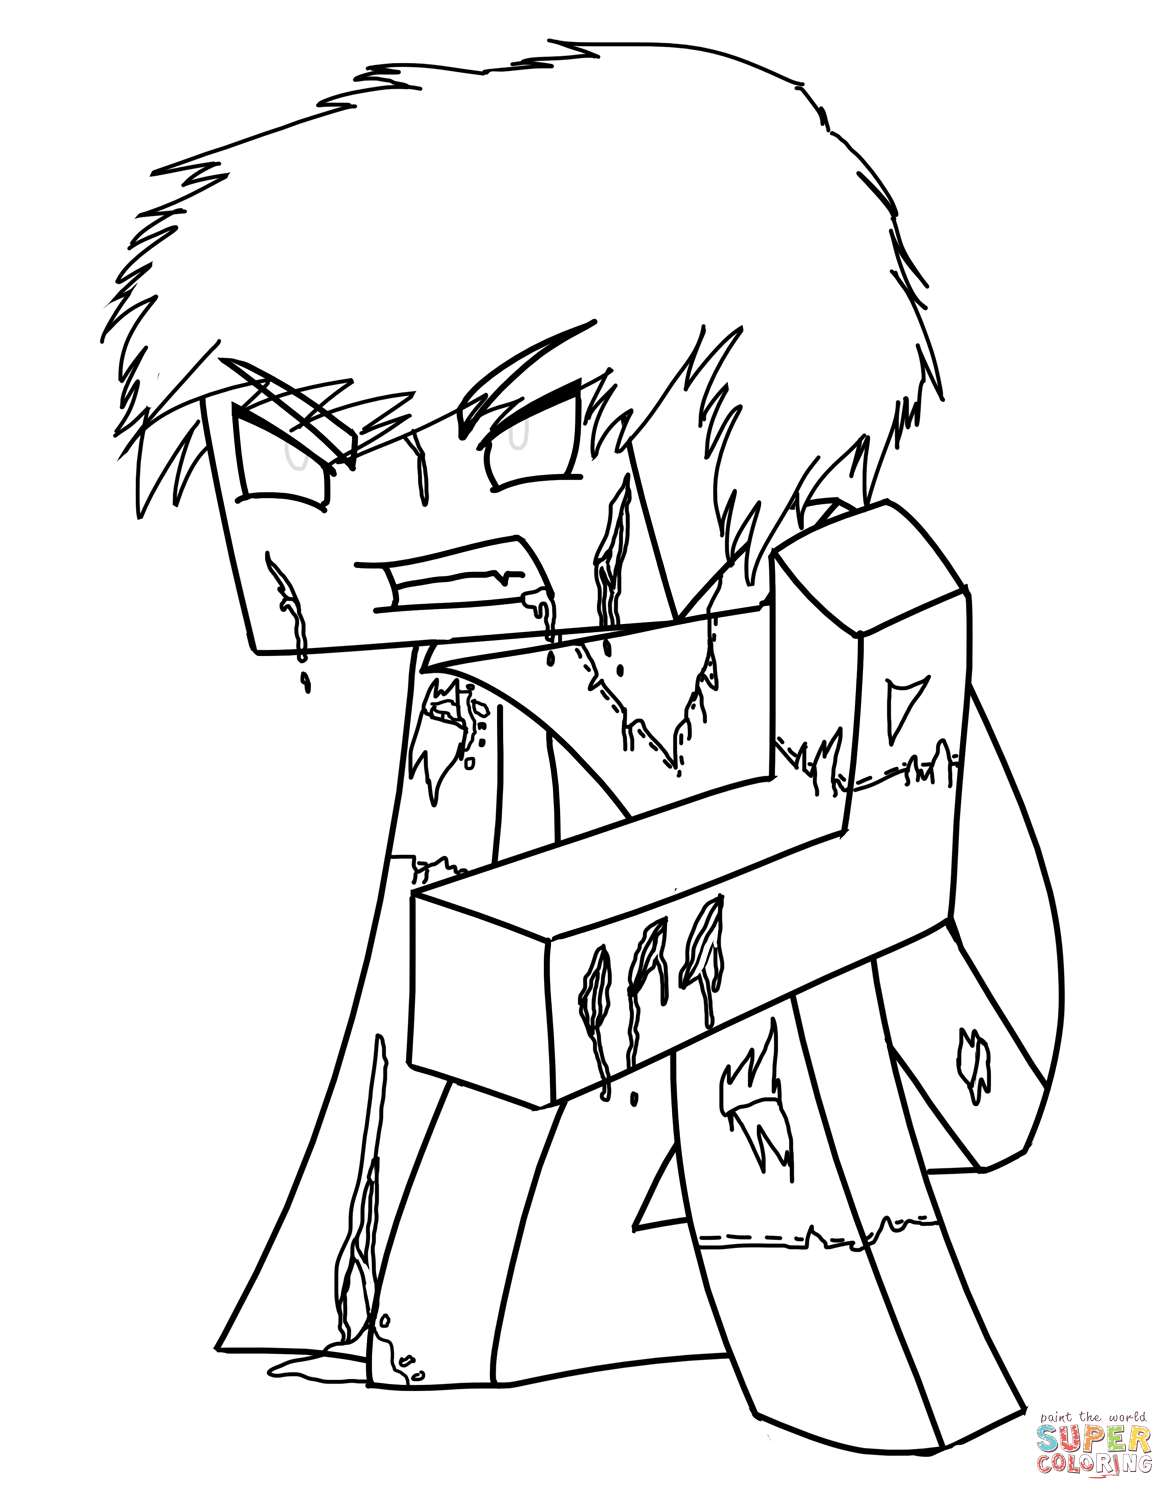 minecraft herobrine coloring pages minecraft logo coloring sheet coloring pages herobrine minecraft coloring pages